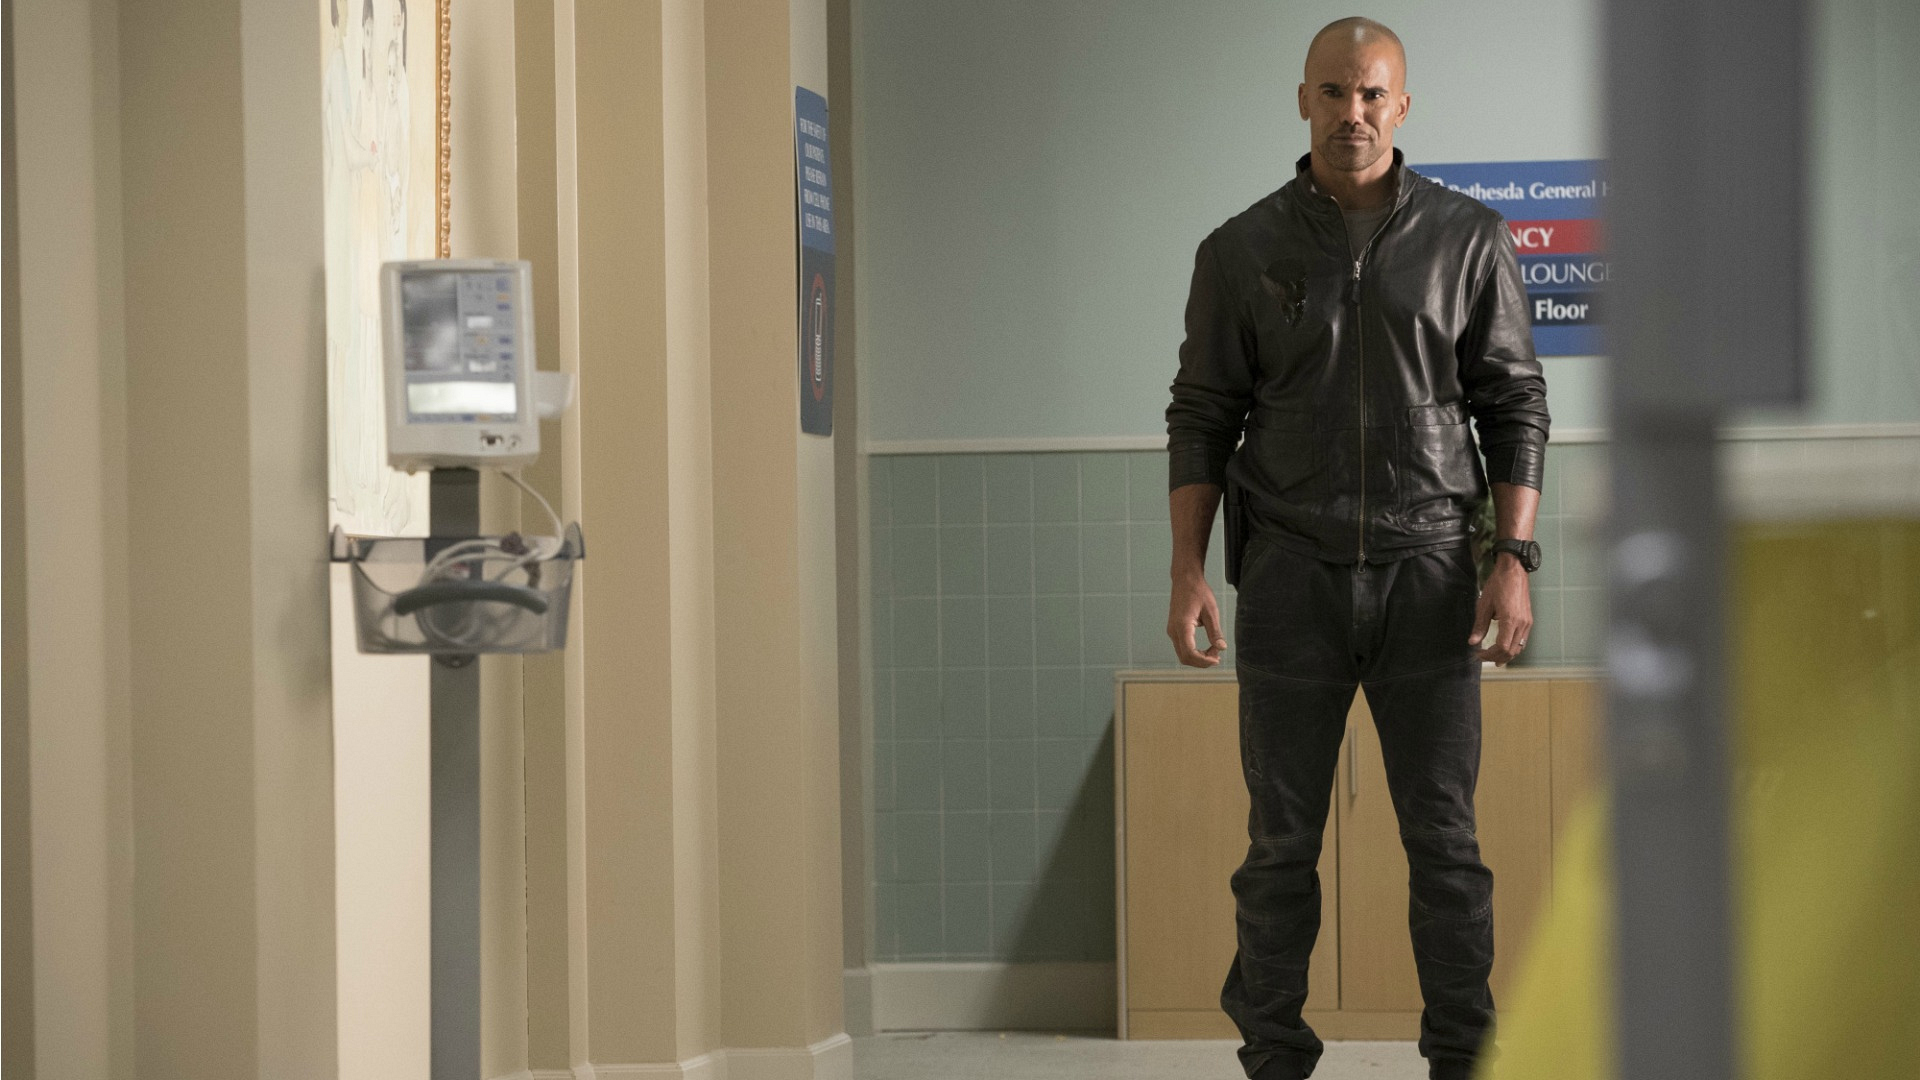 We said goodbye to SSA Derek Morgan.